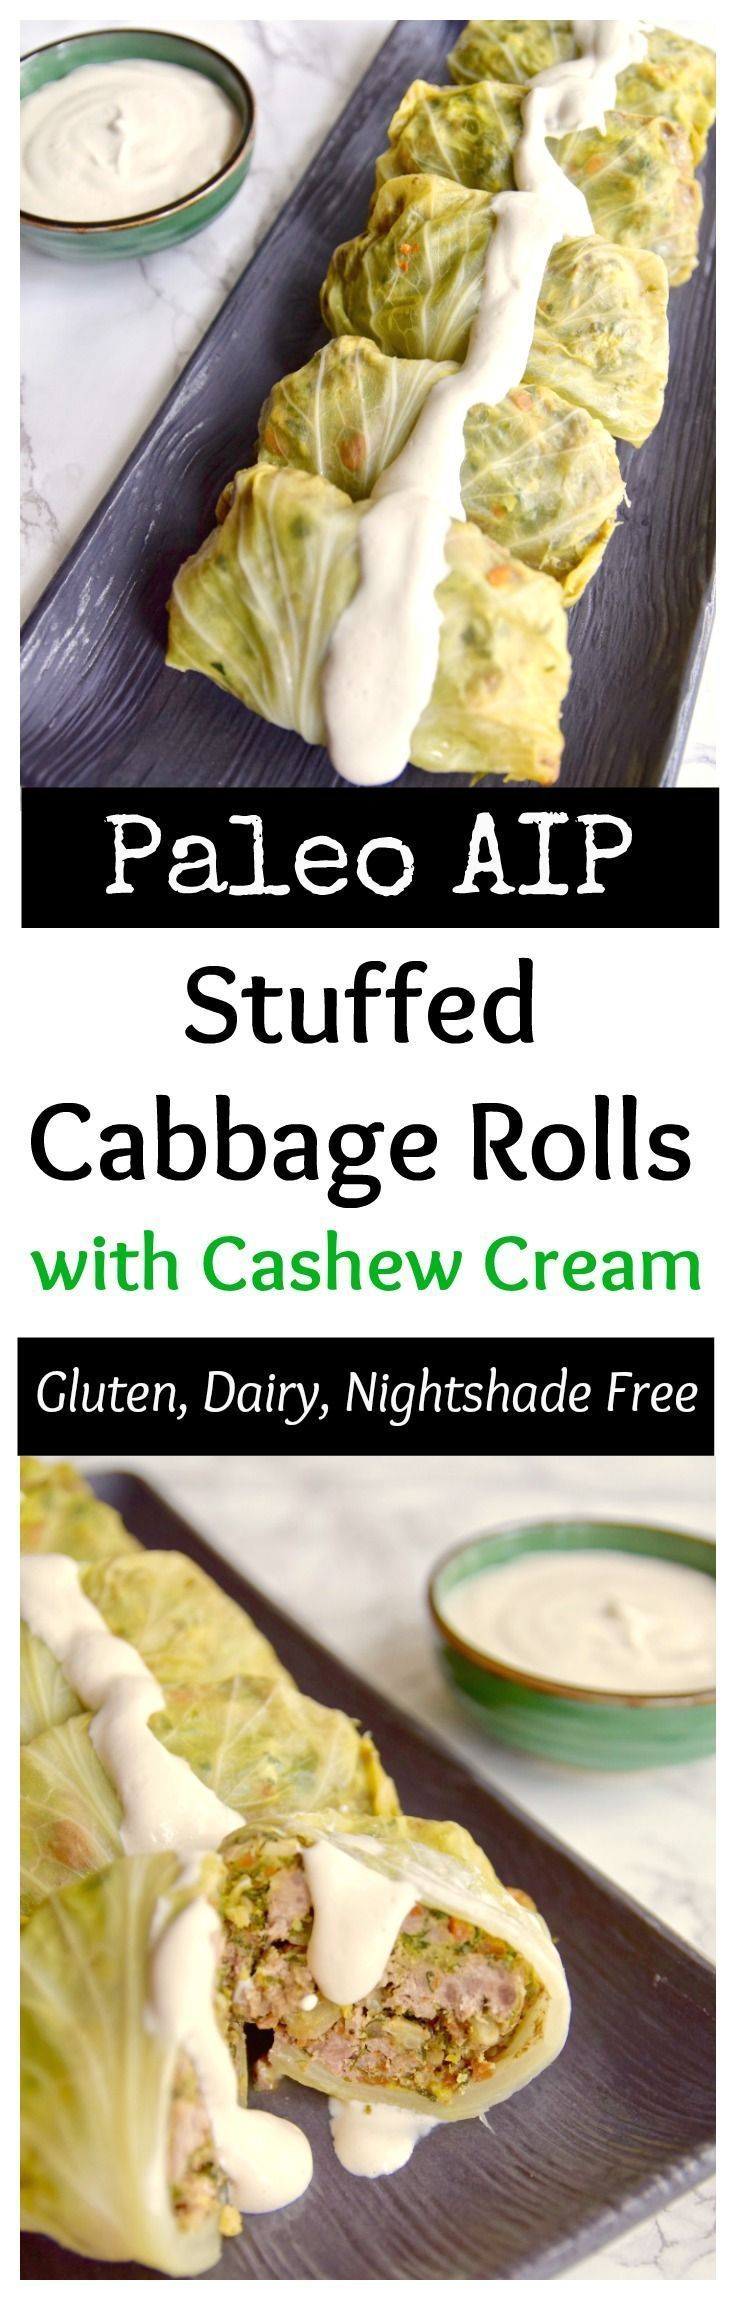 This tomato-less stuffed cabbage with cashew cream is great for St. Patrick's Day or any day of the year. It's dairy free, rice free and night shade free so great for AIP Paleoor a healthy meal   http://TastingPage.com